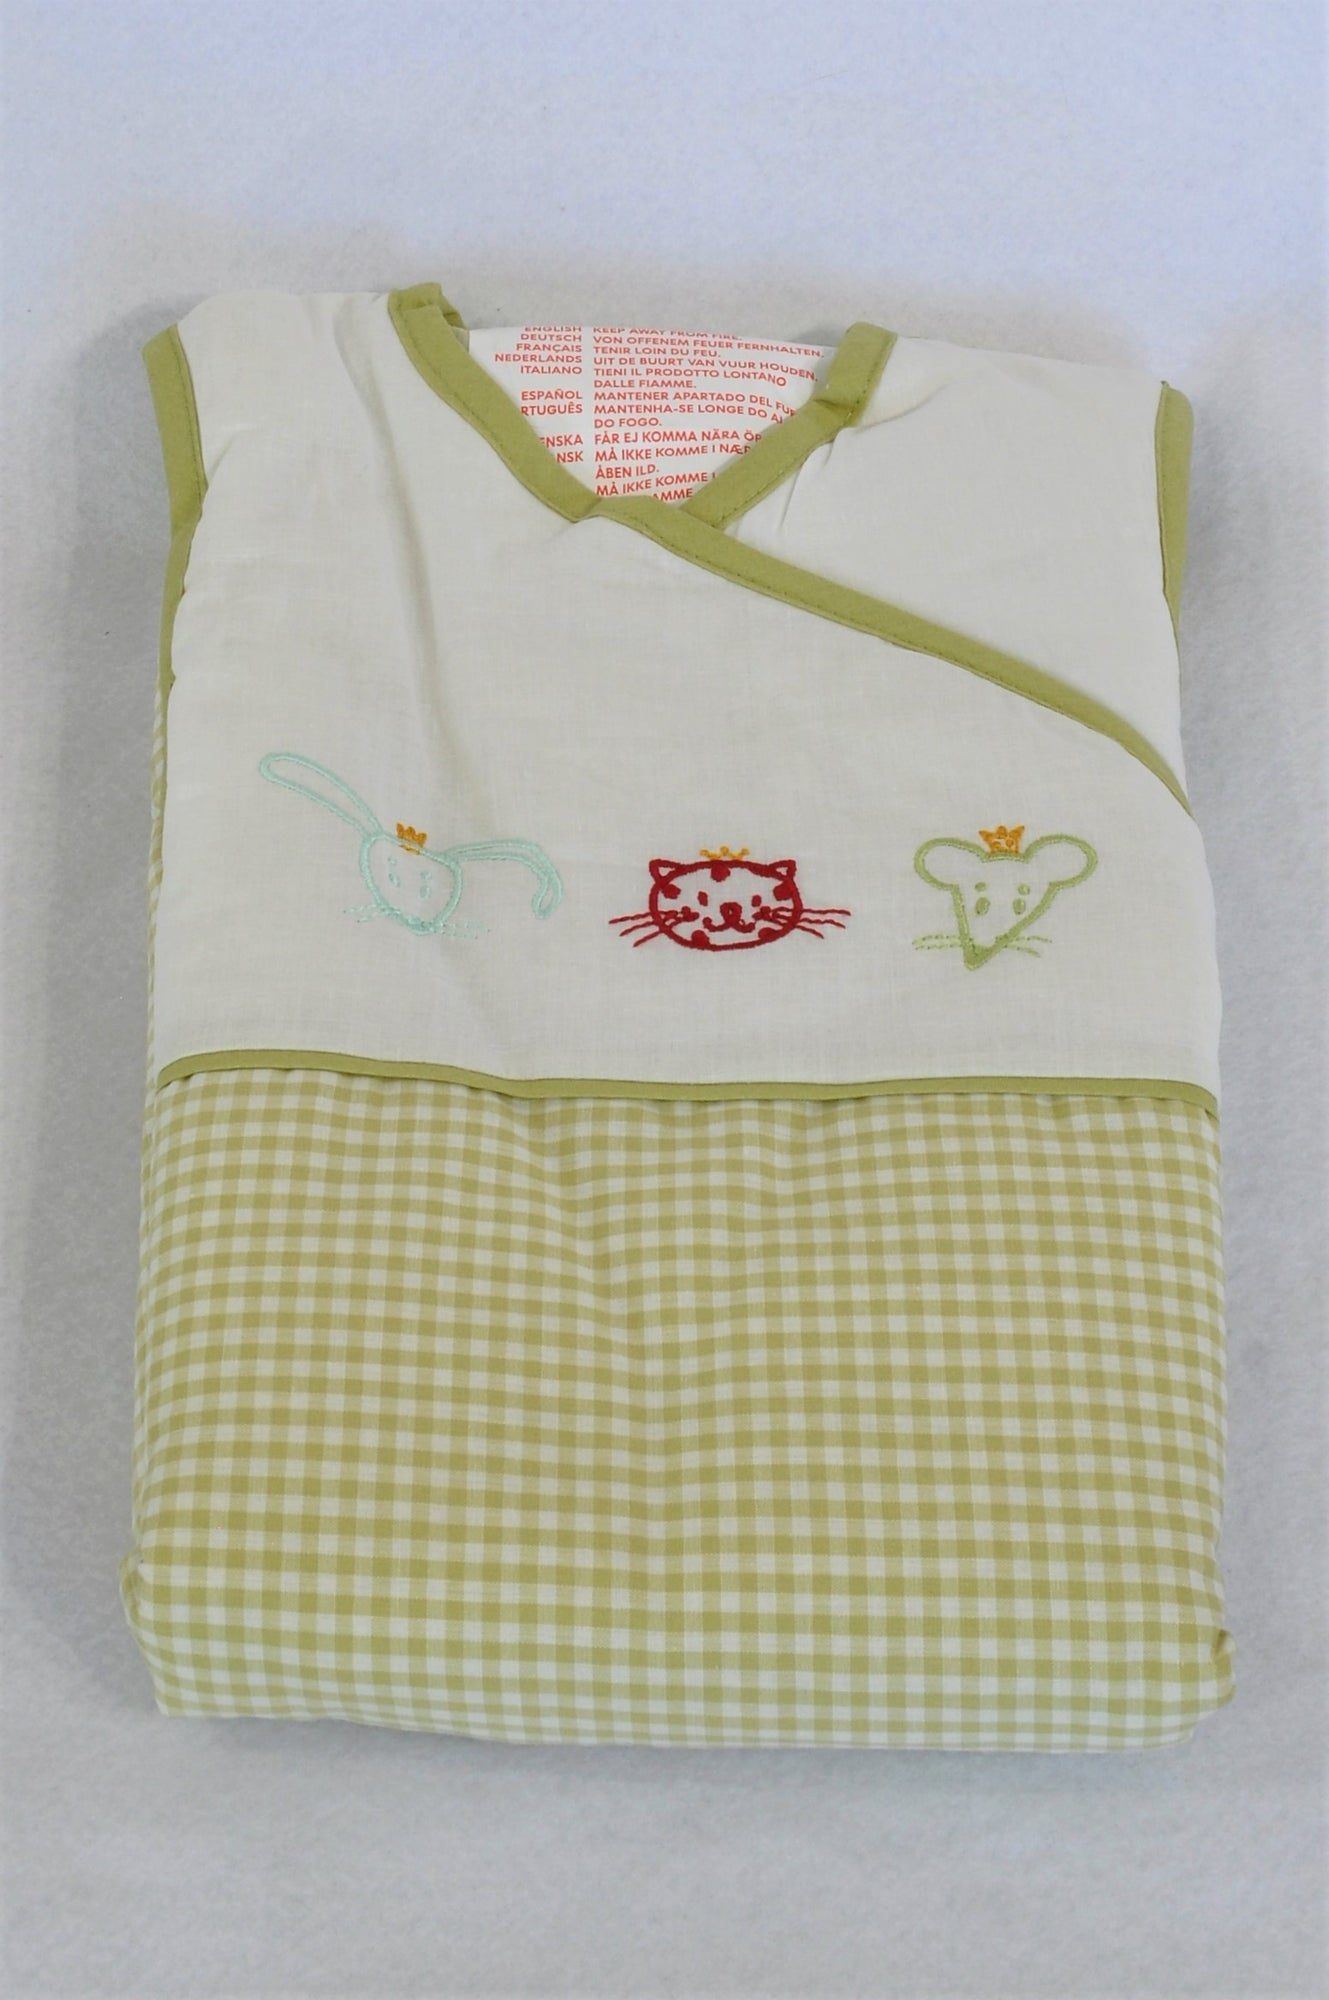 New Ikea Fabler Green Gingham 2.5 Tog Sleep Sack Unisex 0-6 months